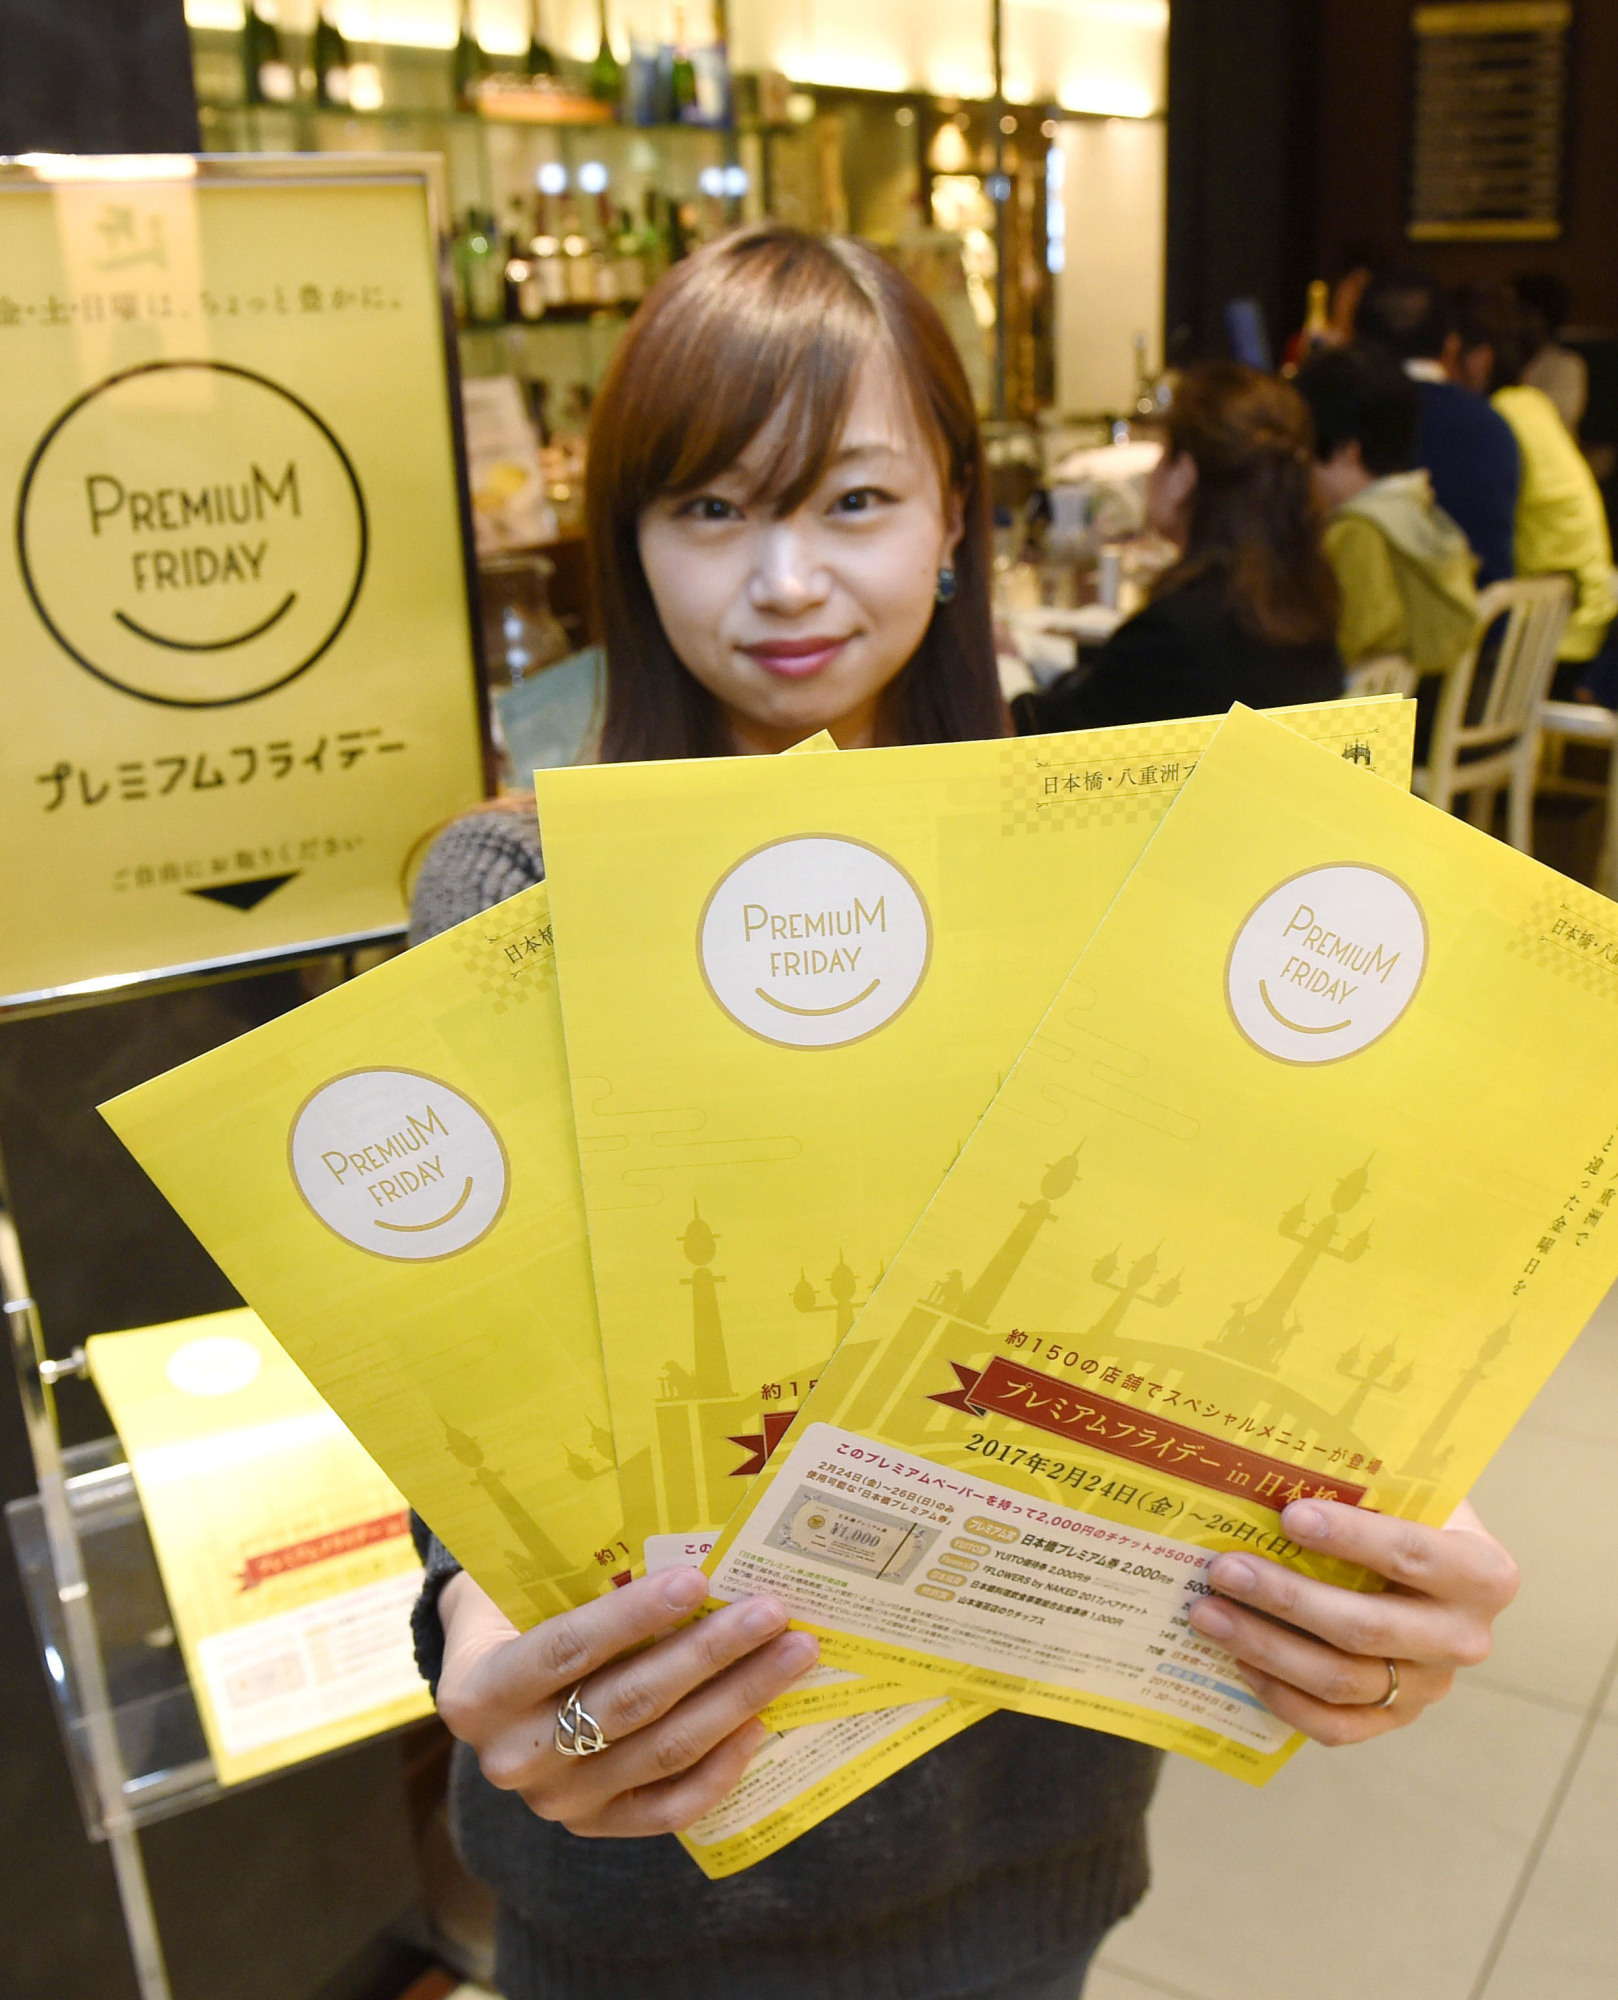 Friday night shopping: A woman holds up leaflets to promote a Premium Friday event at Daimaru Tokyo Store. | KYODO